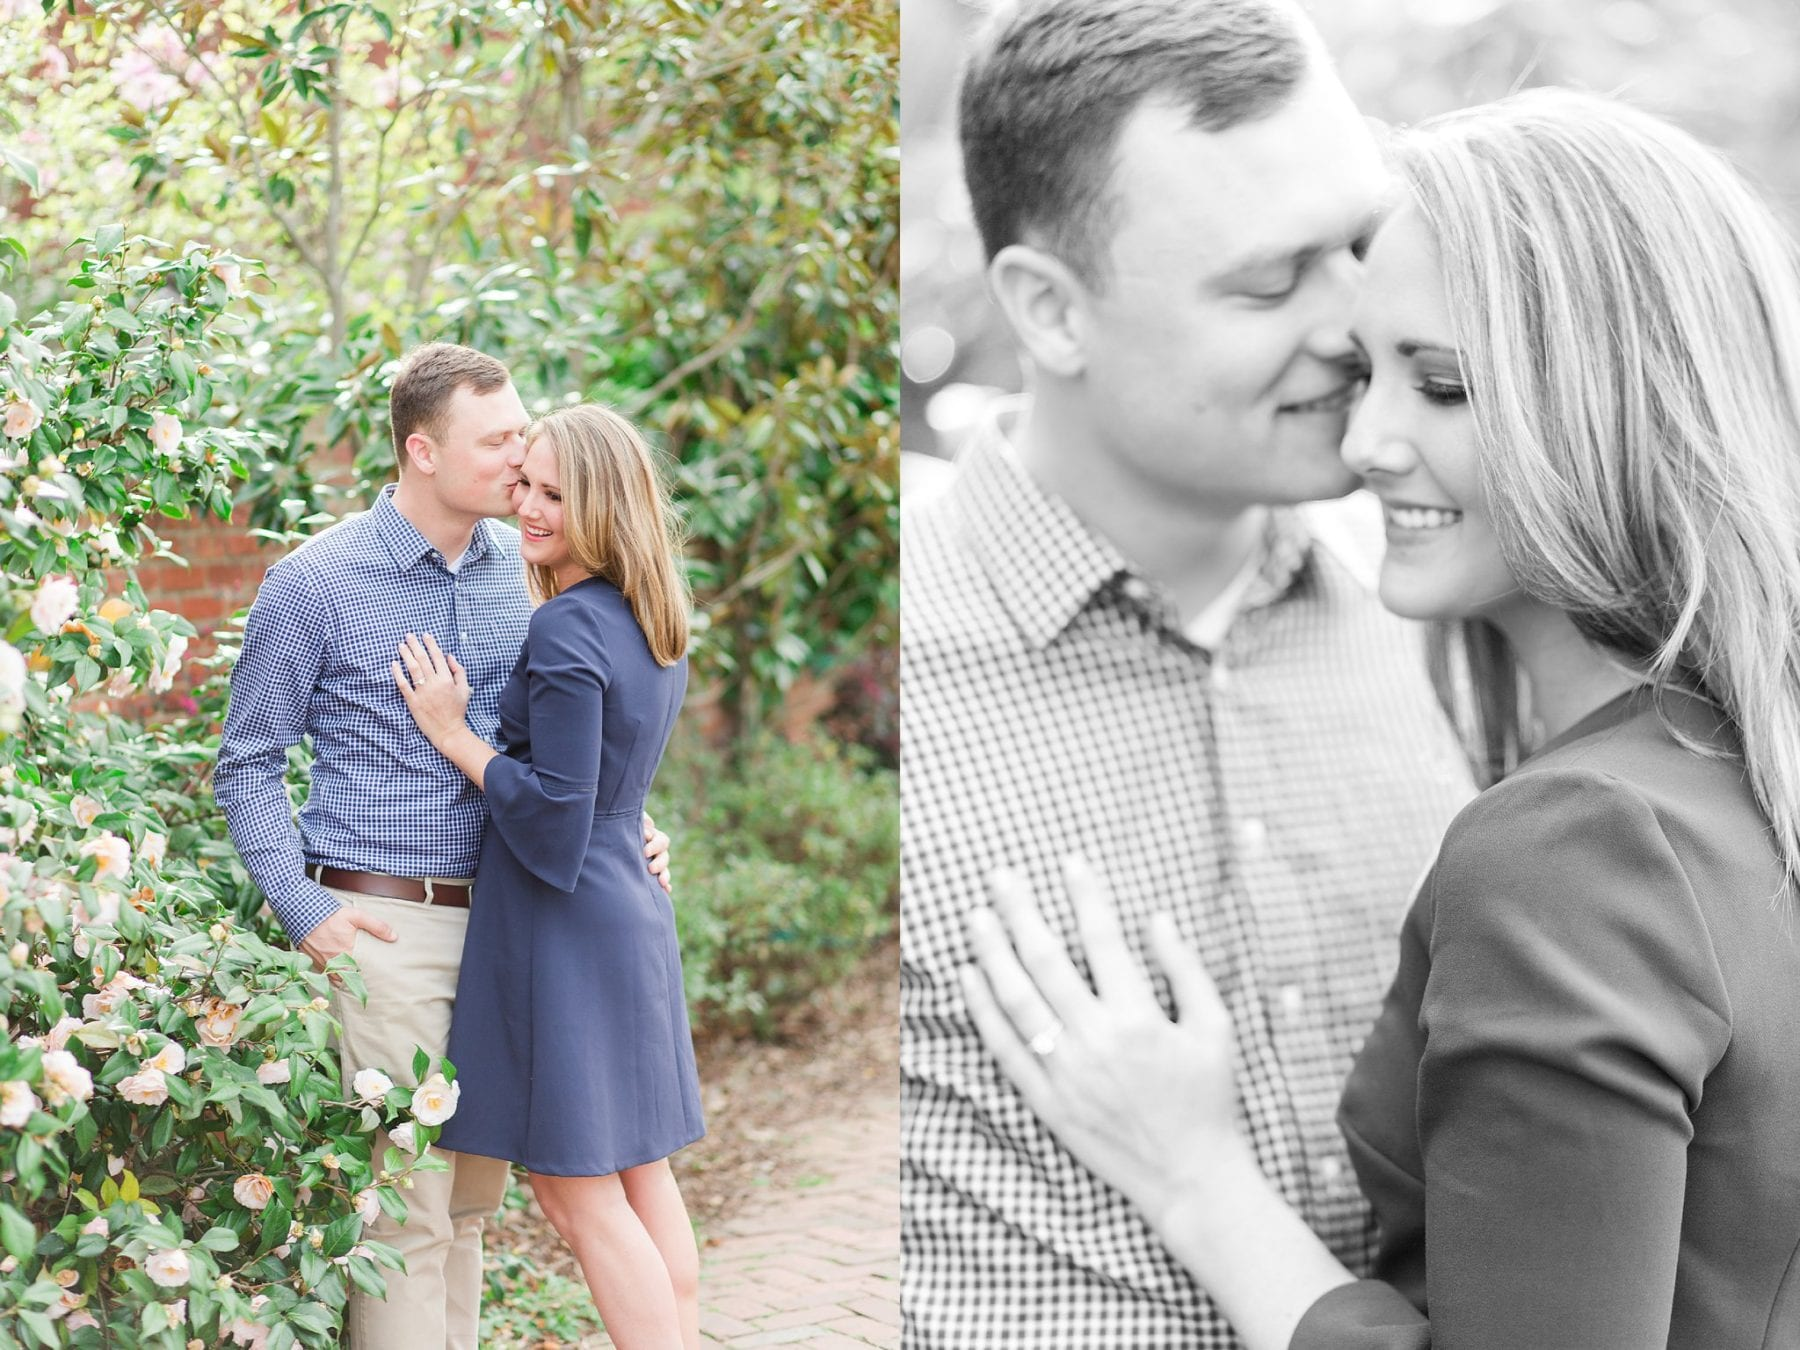 Springtime Old Town Alexandria Engagement Session Matt & Maxie Megan Kelsey Photography-21.jpg